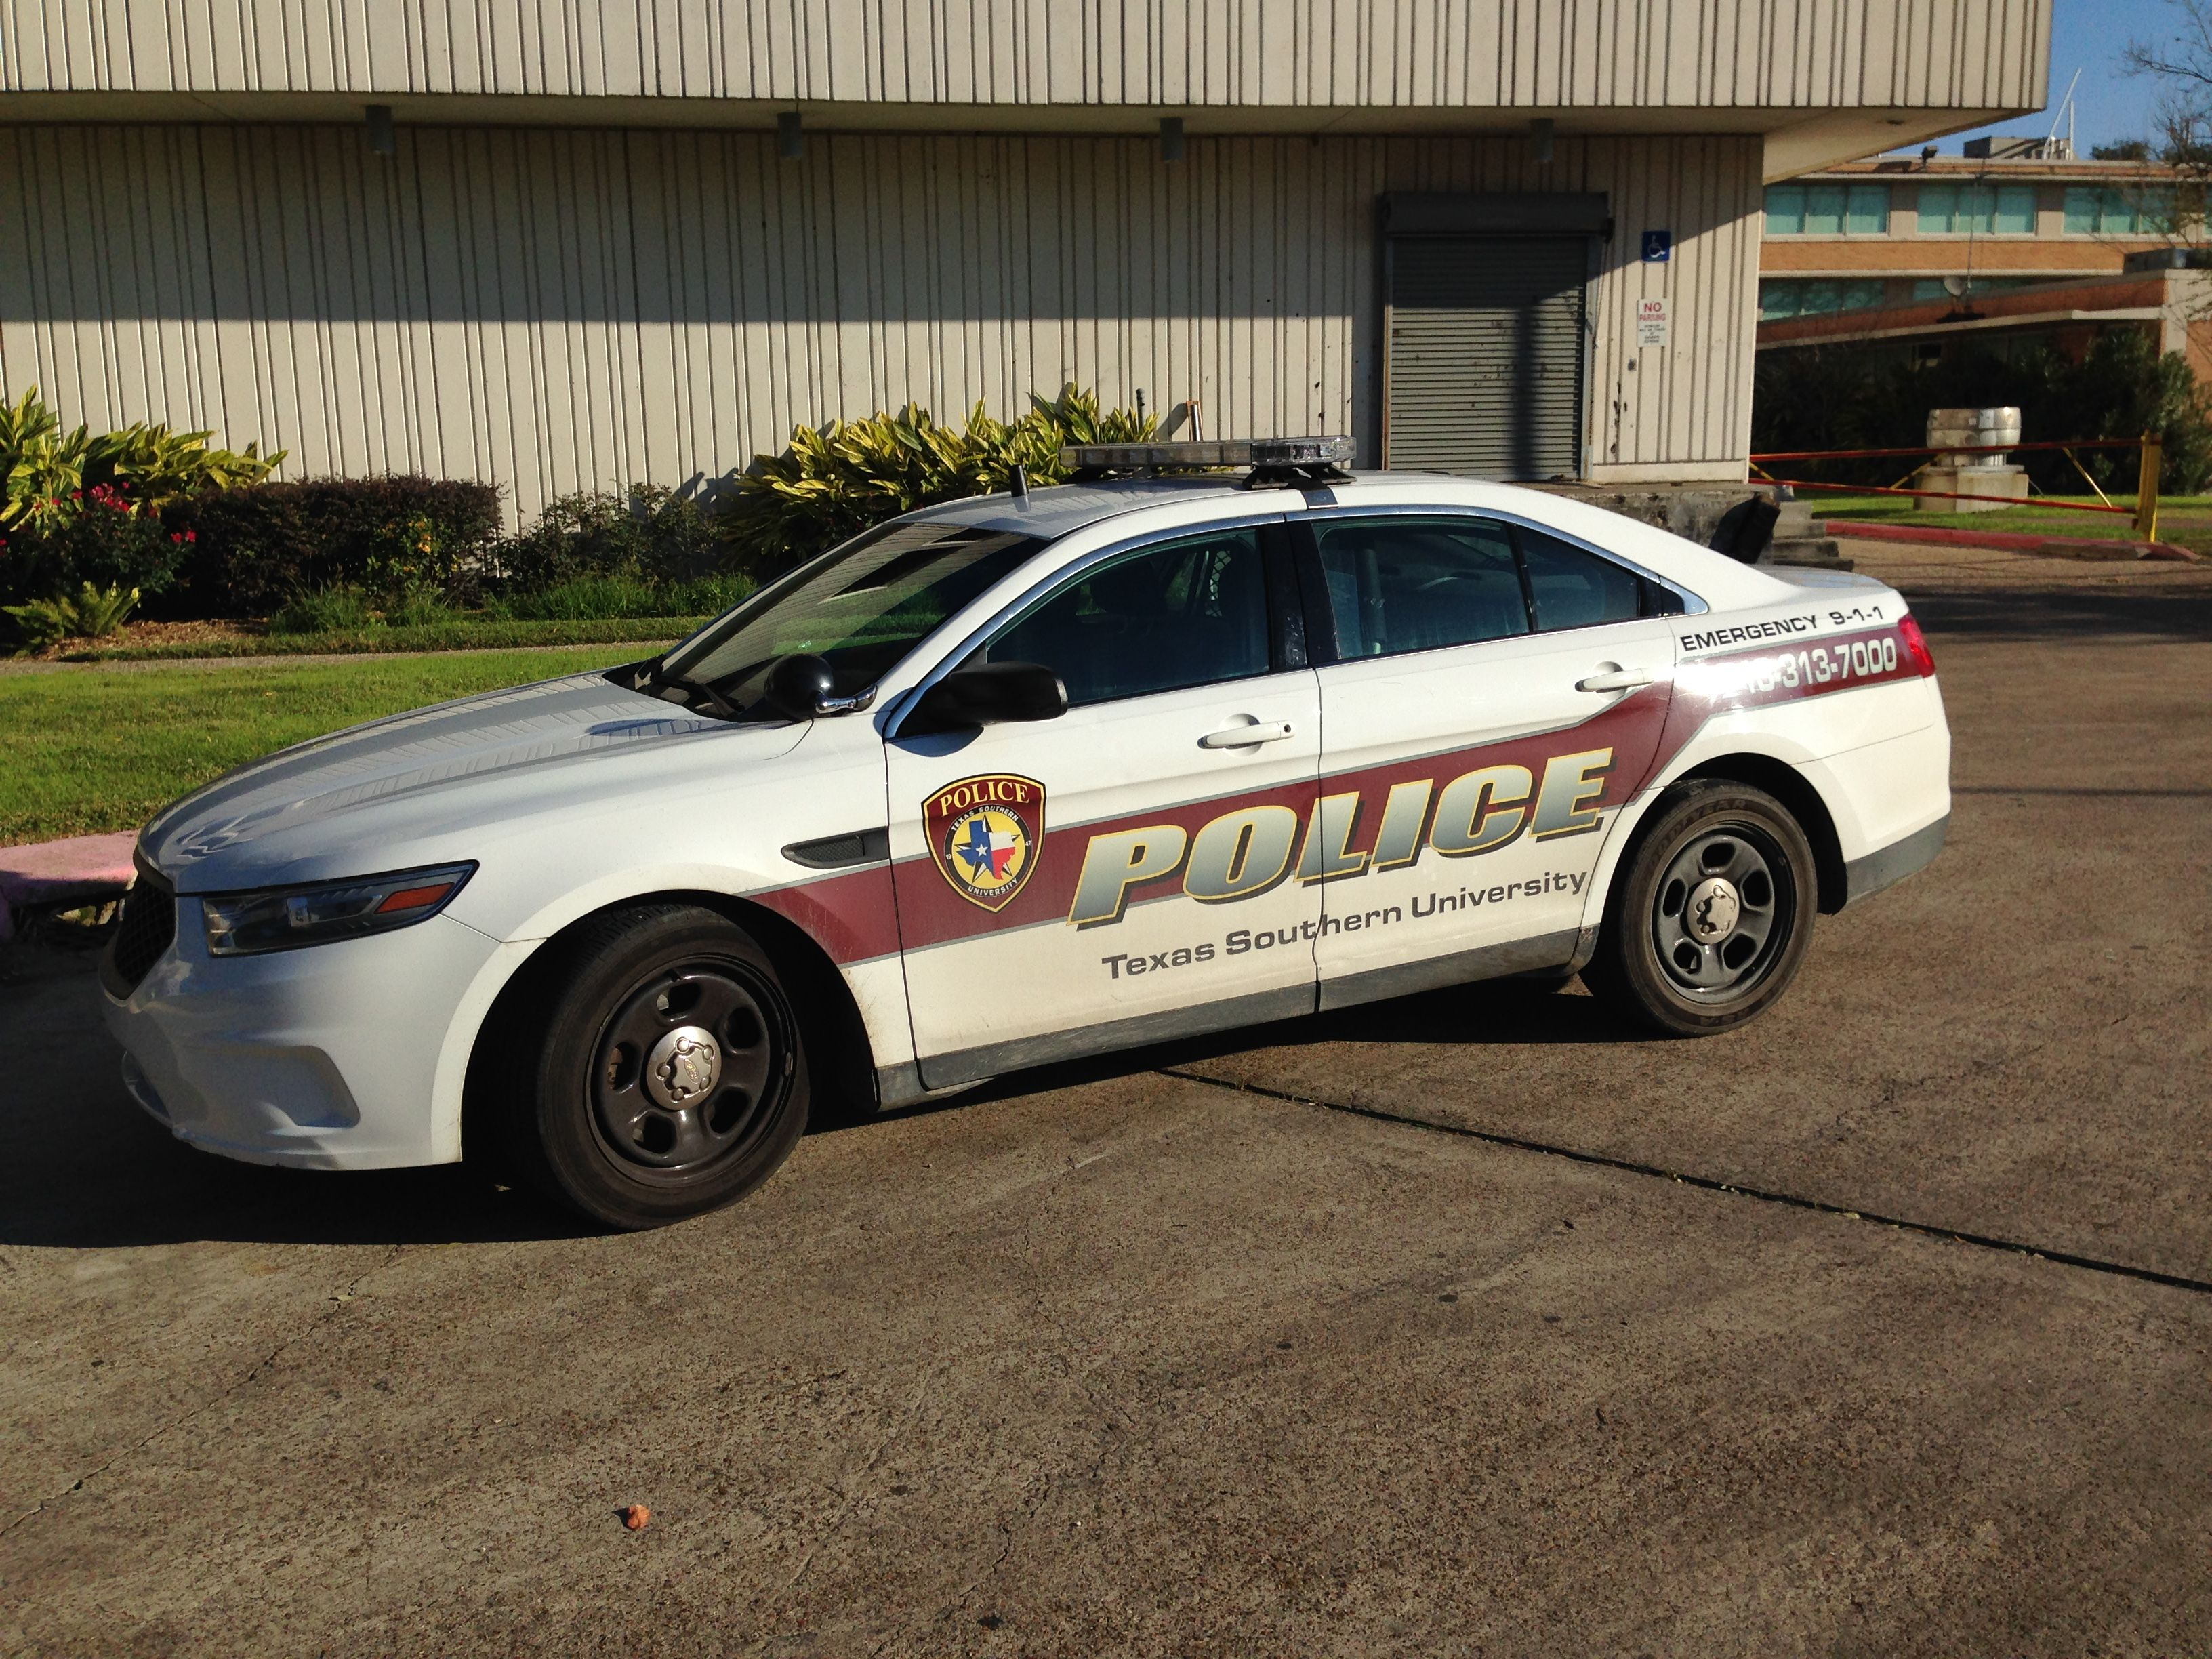 Texas Southern University Police Ford Police Interceptor Houston